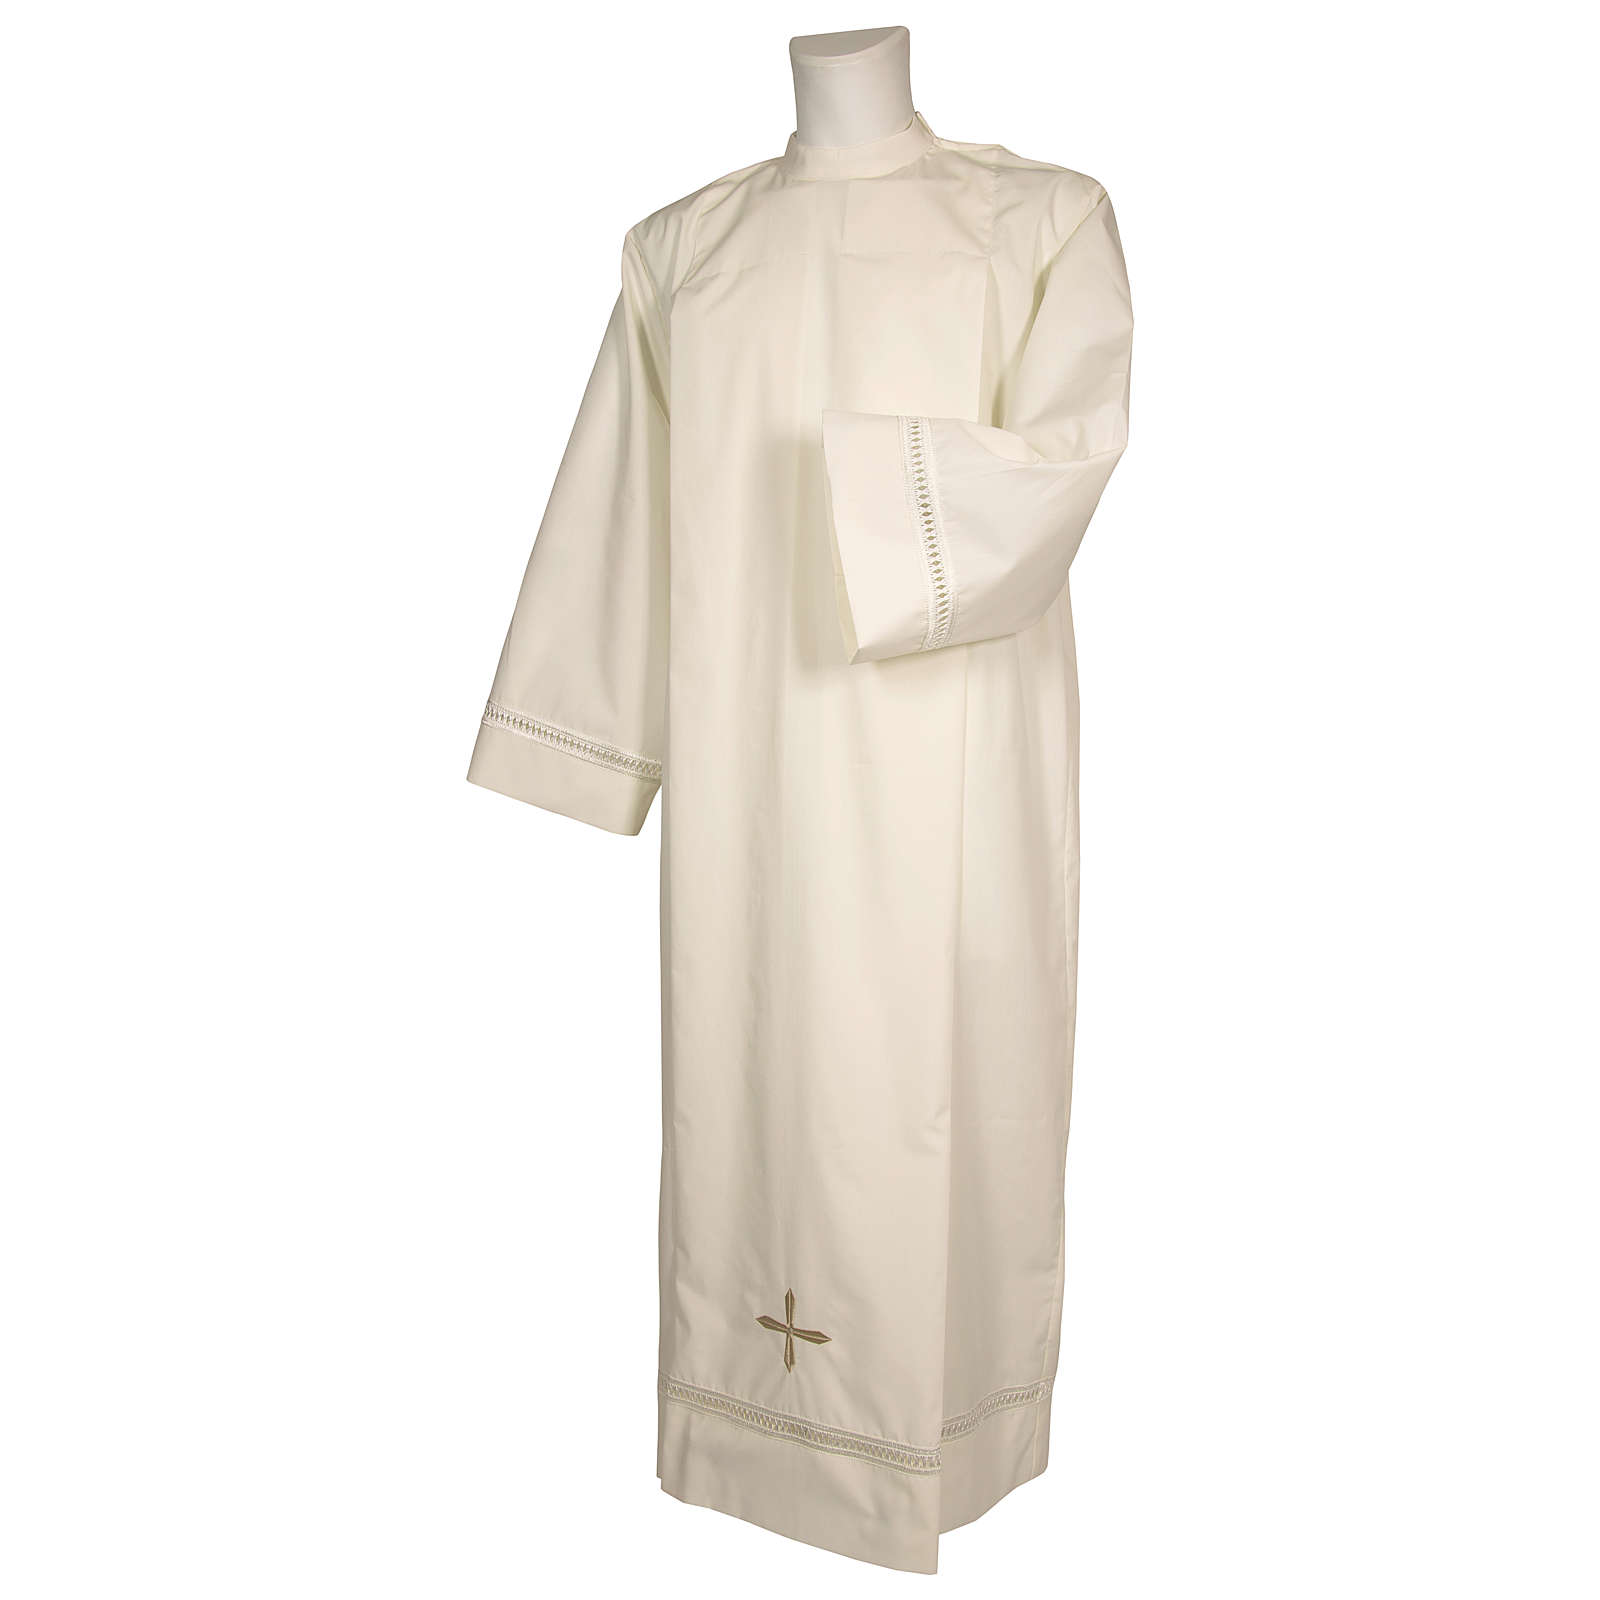 Catholic Alb 65% polyester 35% cotton with shoulder zipper and gigliuccio hemstitch, ivory 4